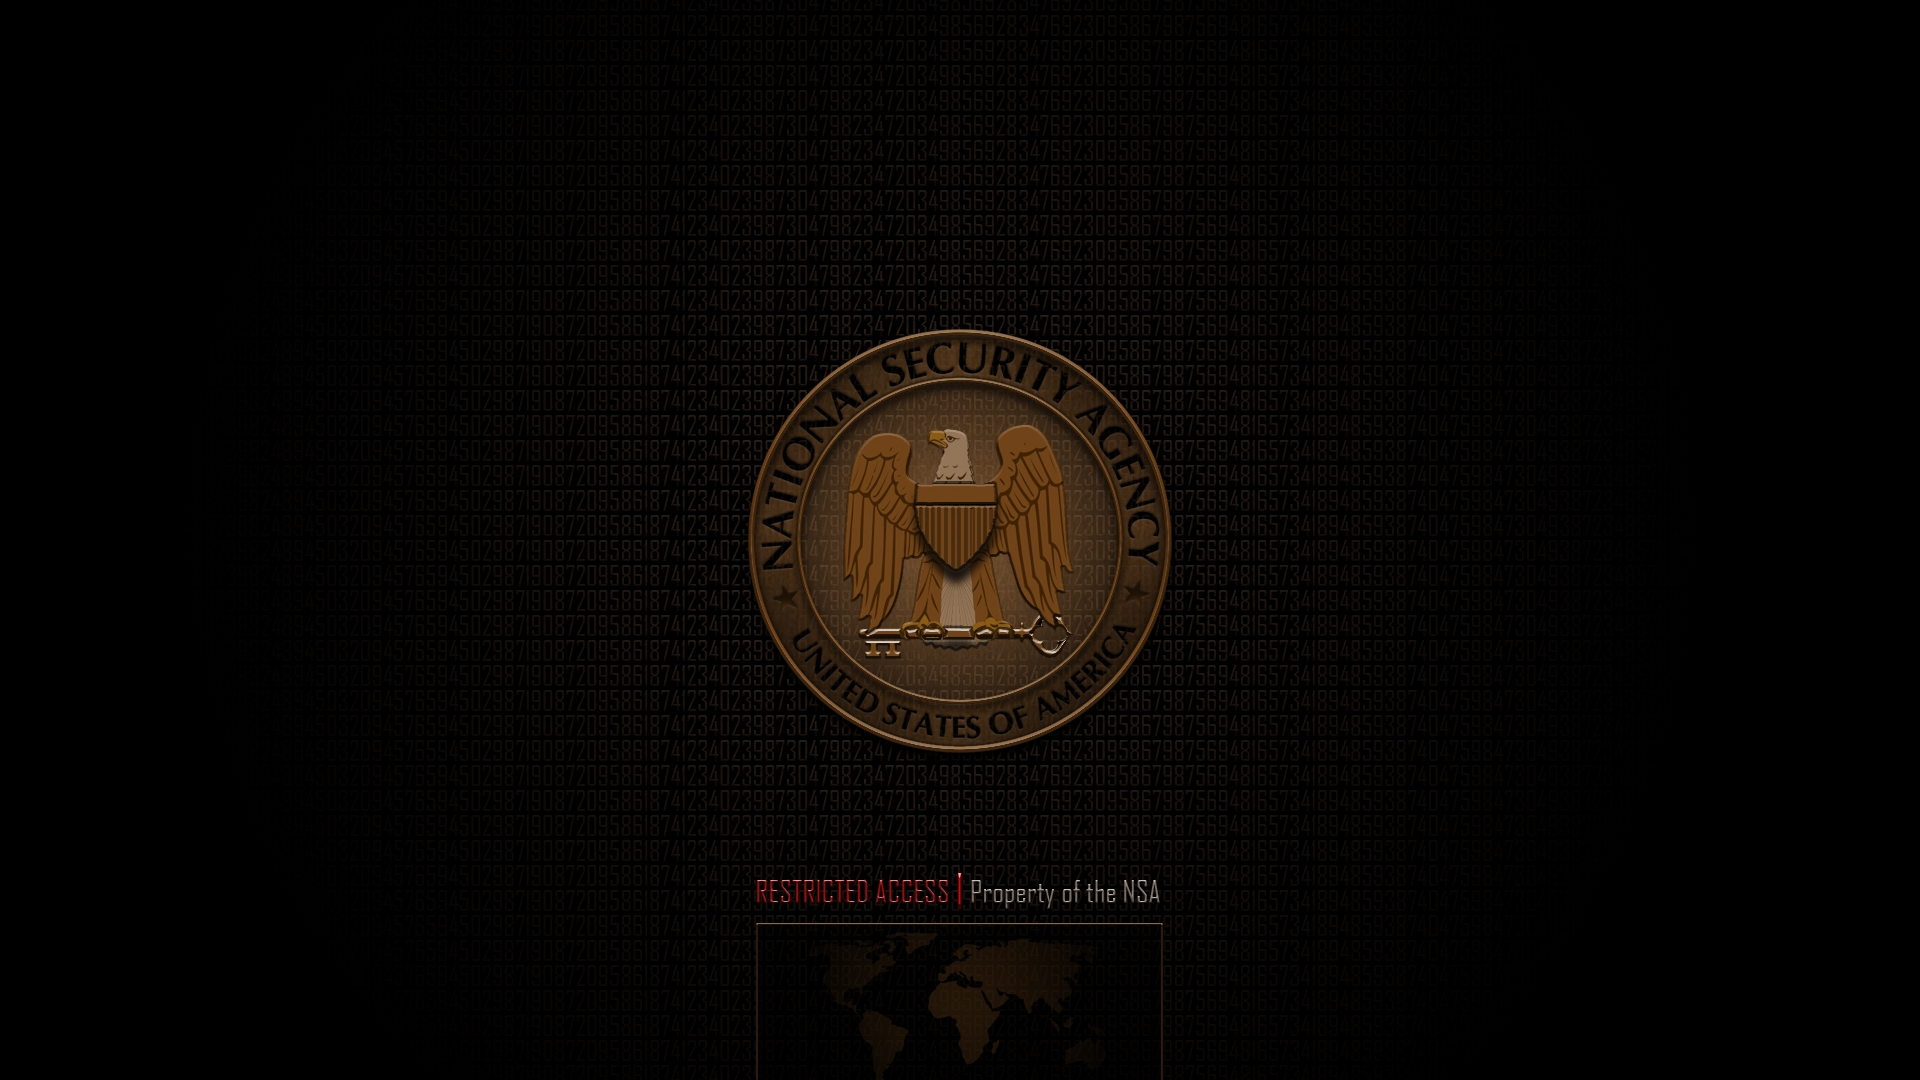 NSA Security Wallpaper